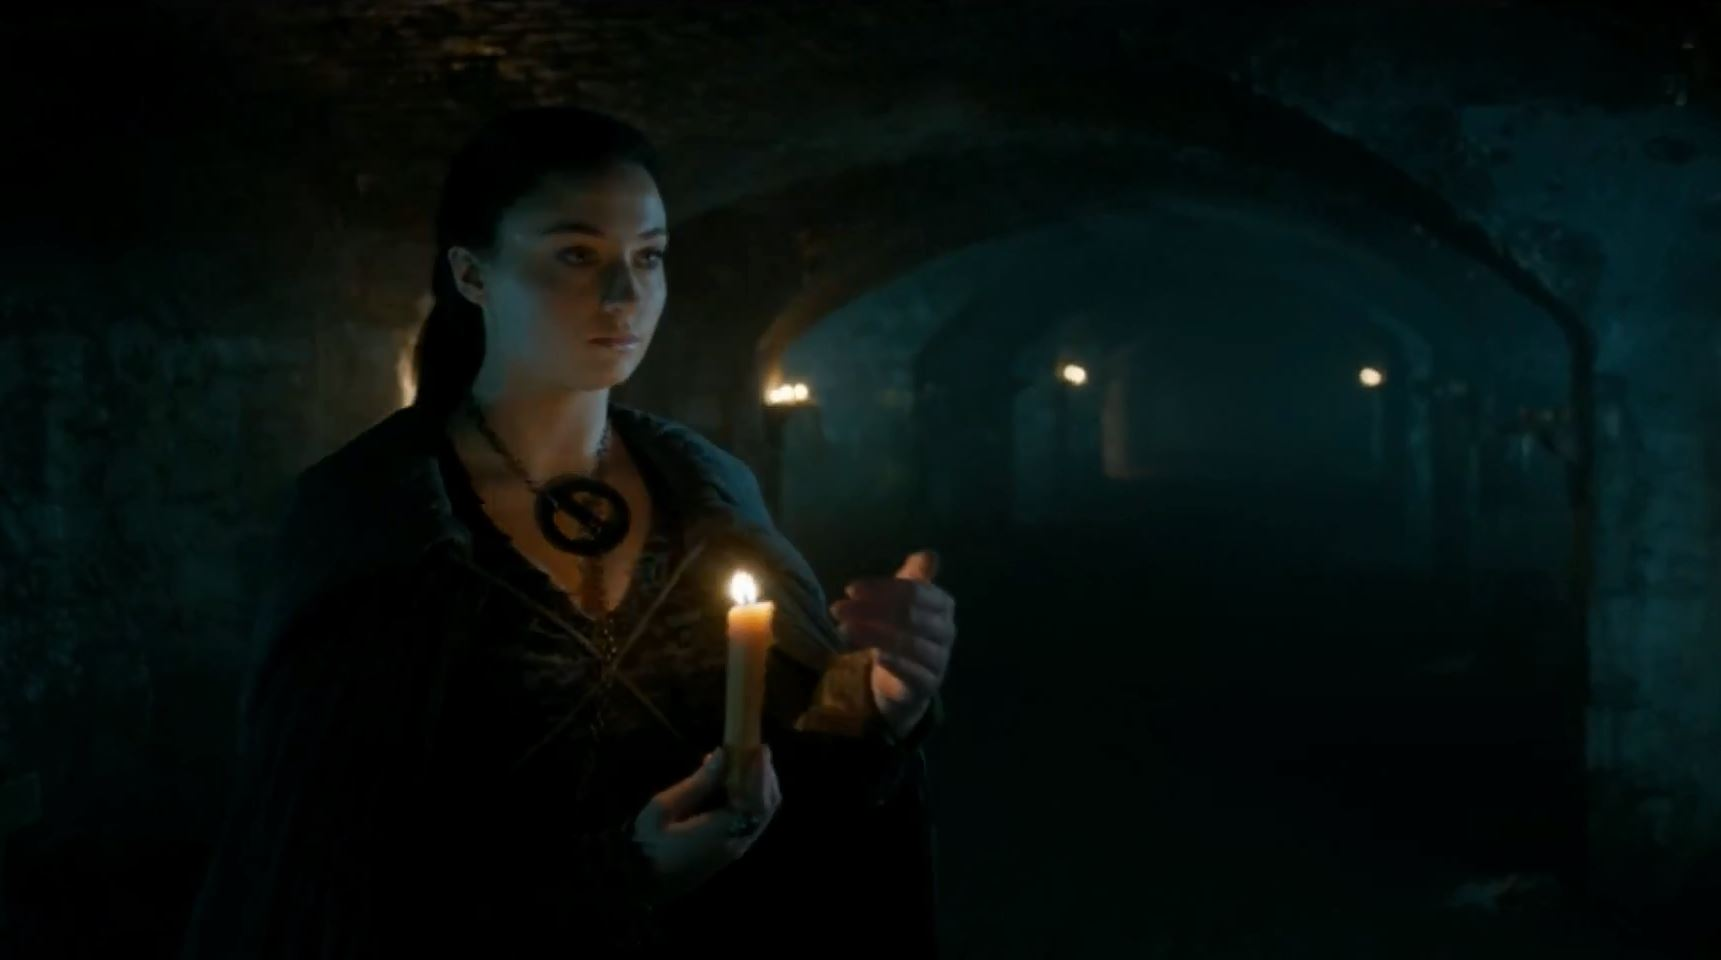 Game of Thrones Season 5 Trailer 2. Sophie Turner as Sansa Stark